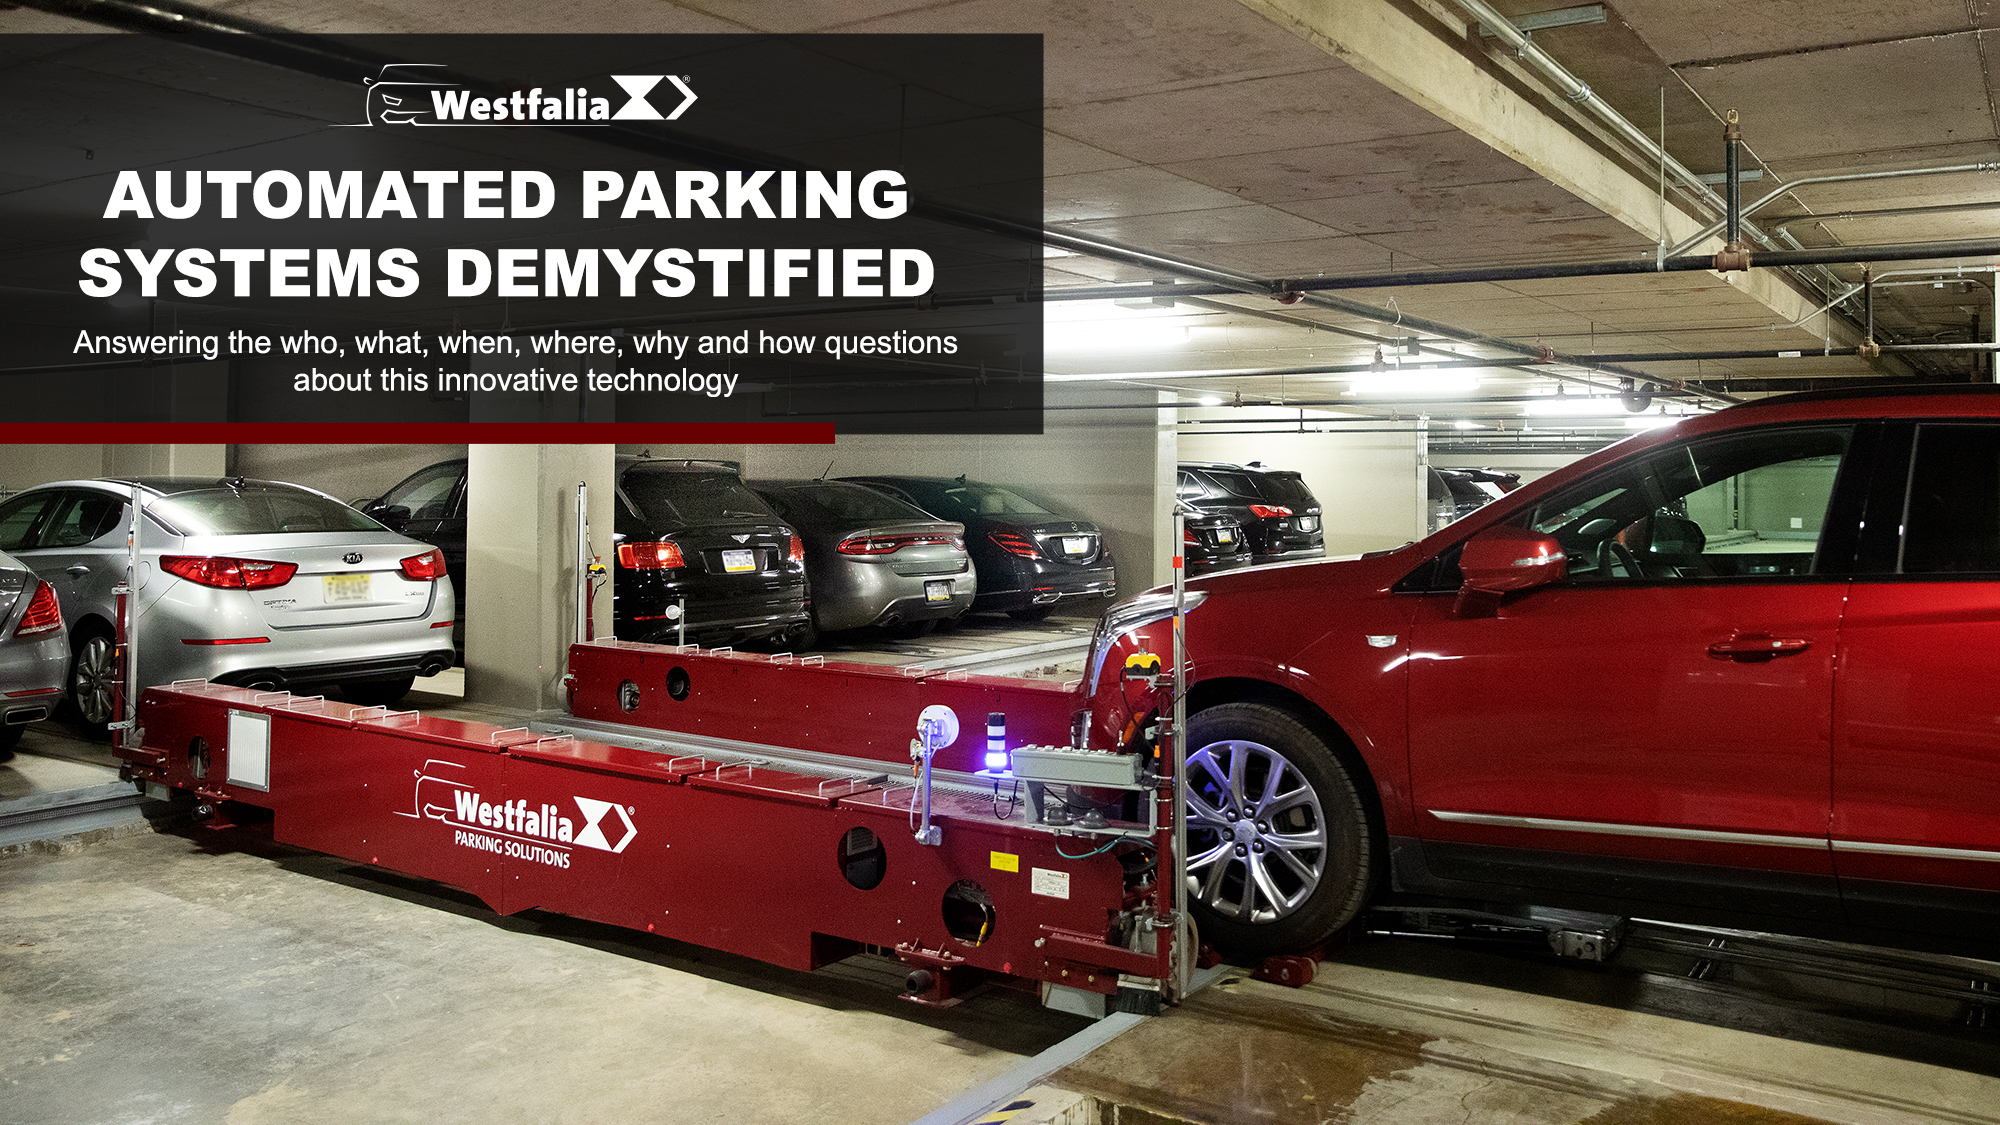 Automated Parking Demystified